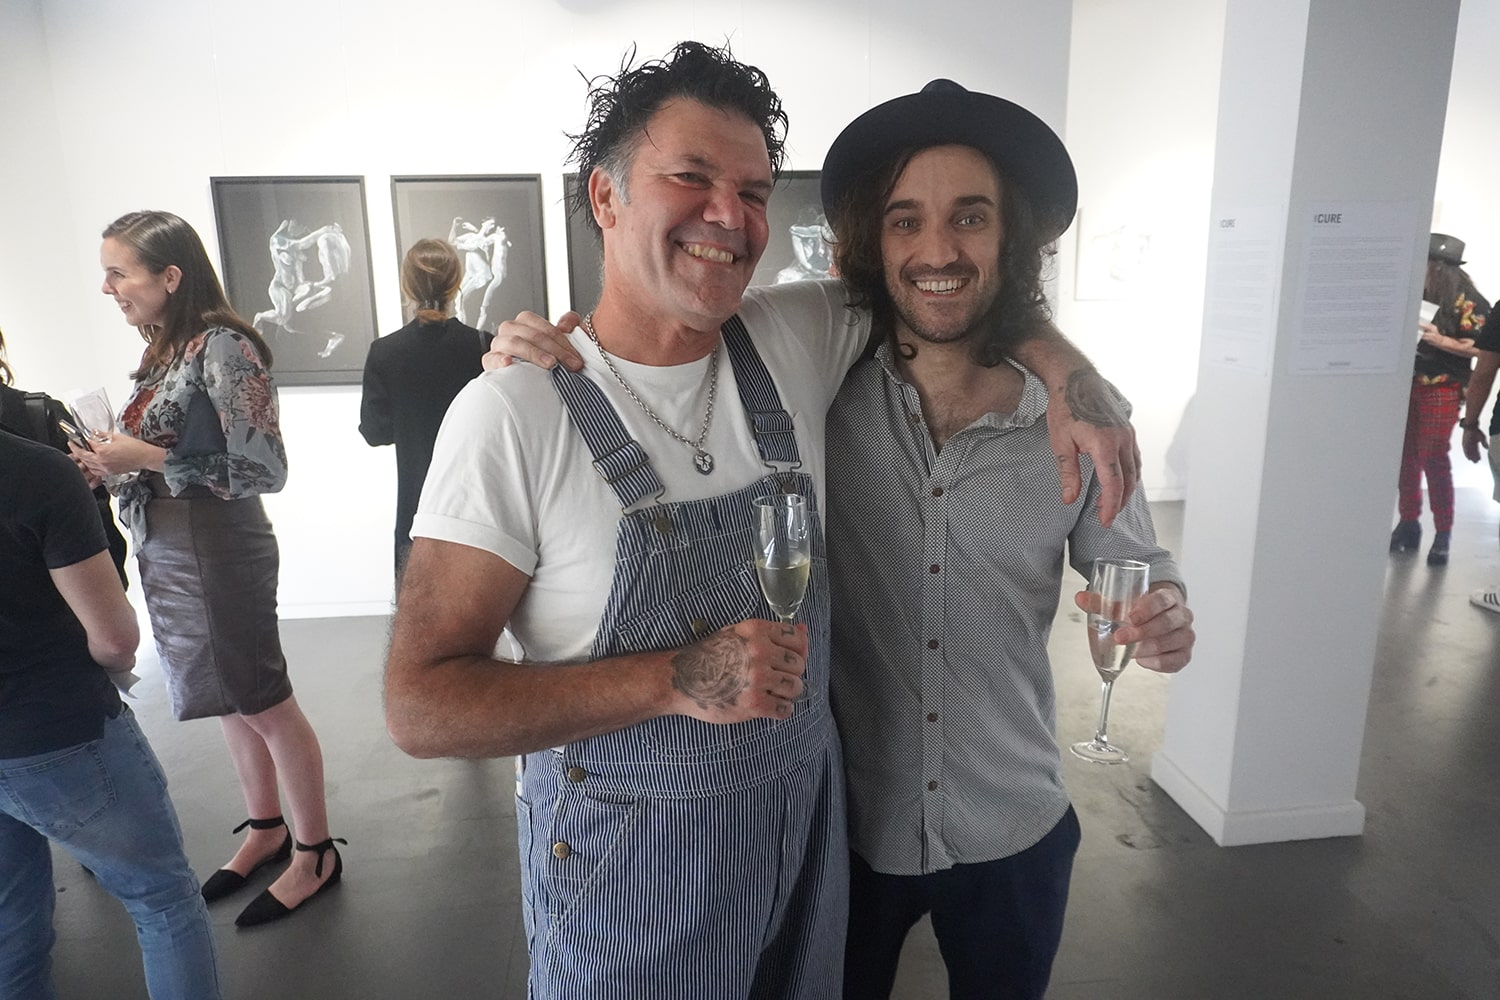 Peach Black Chippendale Gallery Sydney Art Out Live Cure Opening December 2020 11